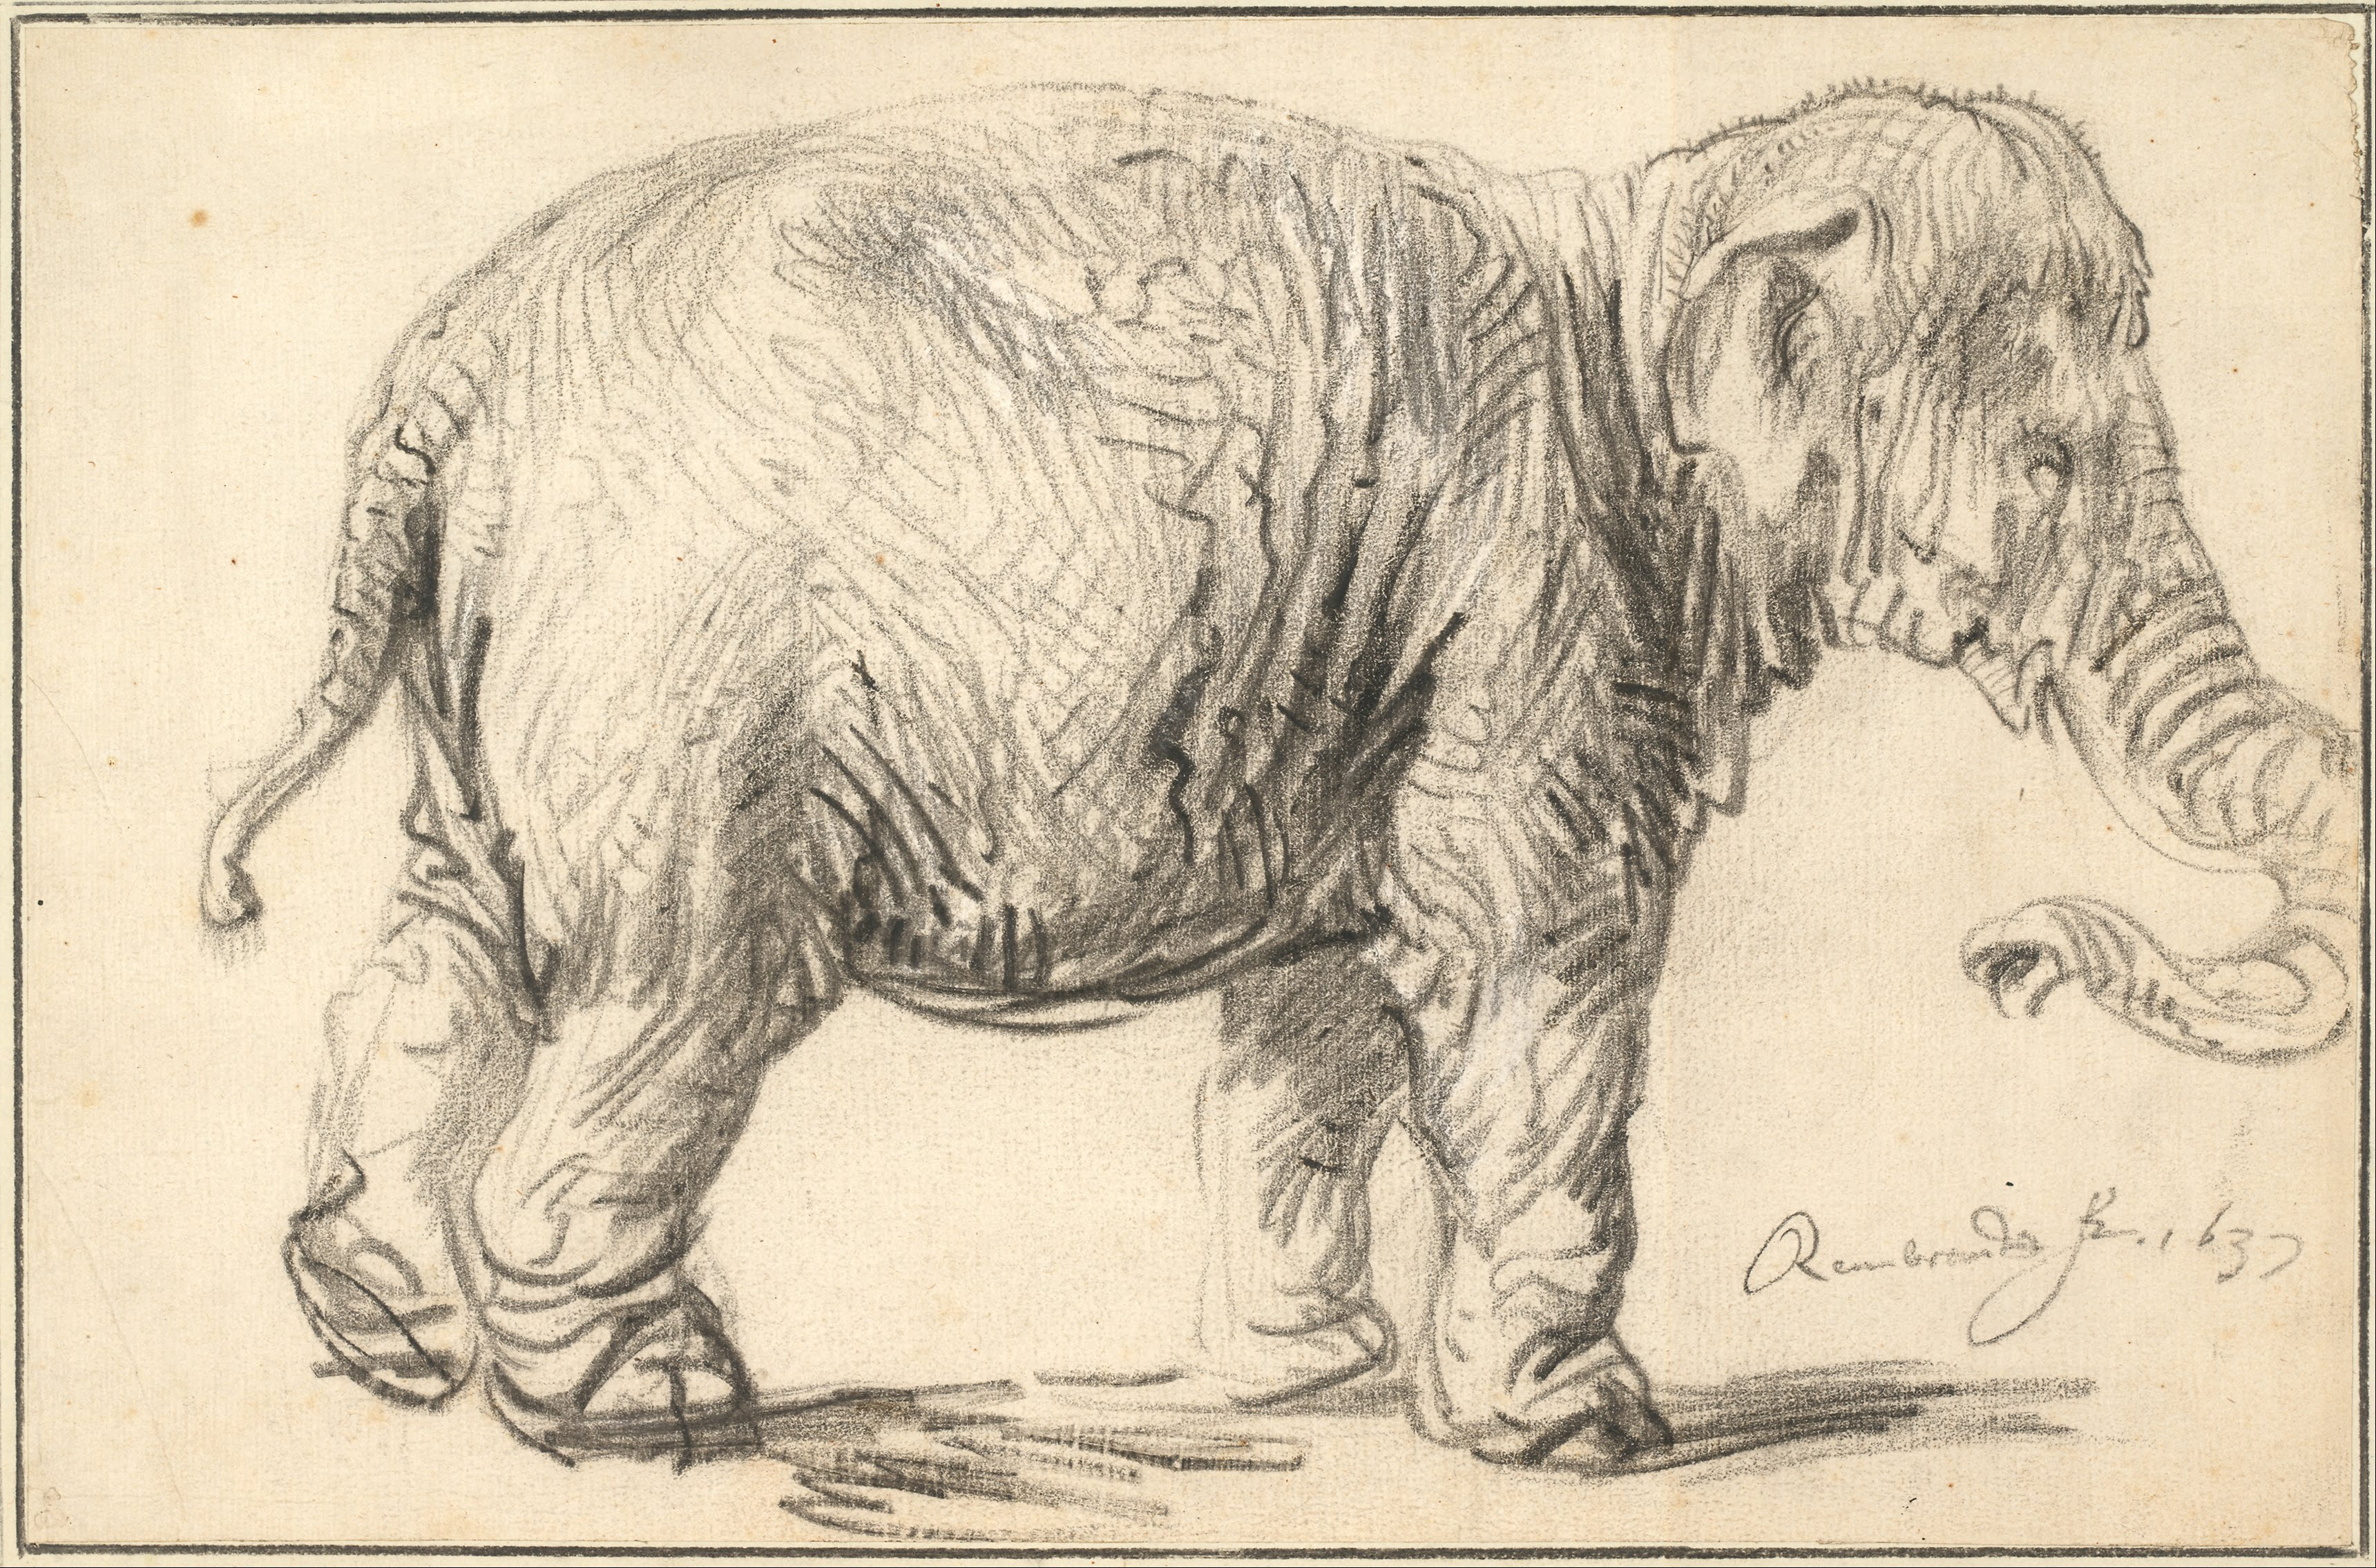 File:Rembrandt Harmenszoon van Rijn - An Elephant, 1637 - Google Art  Project.